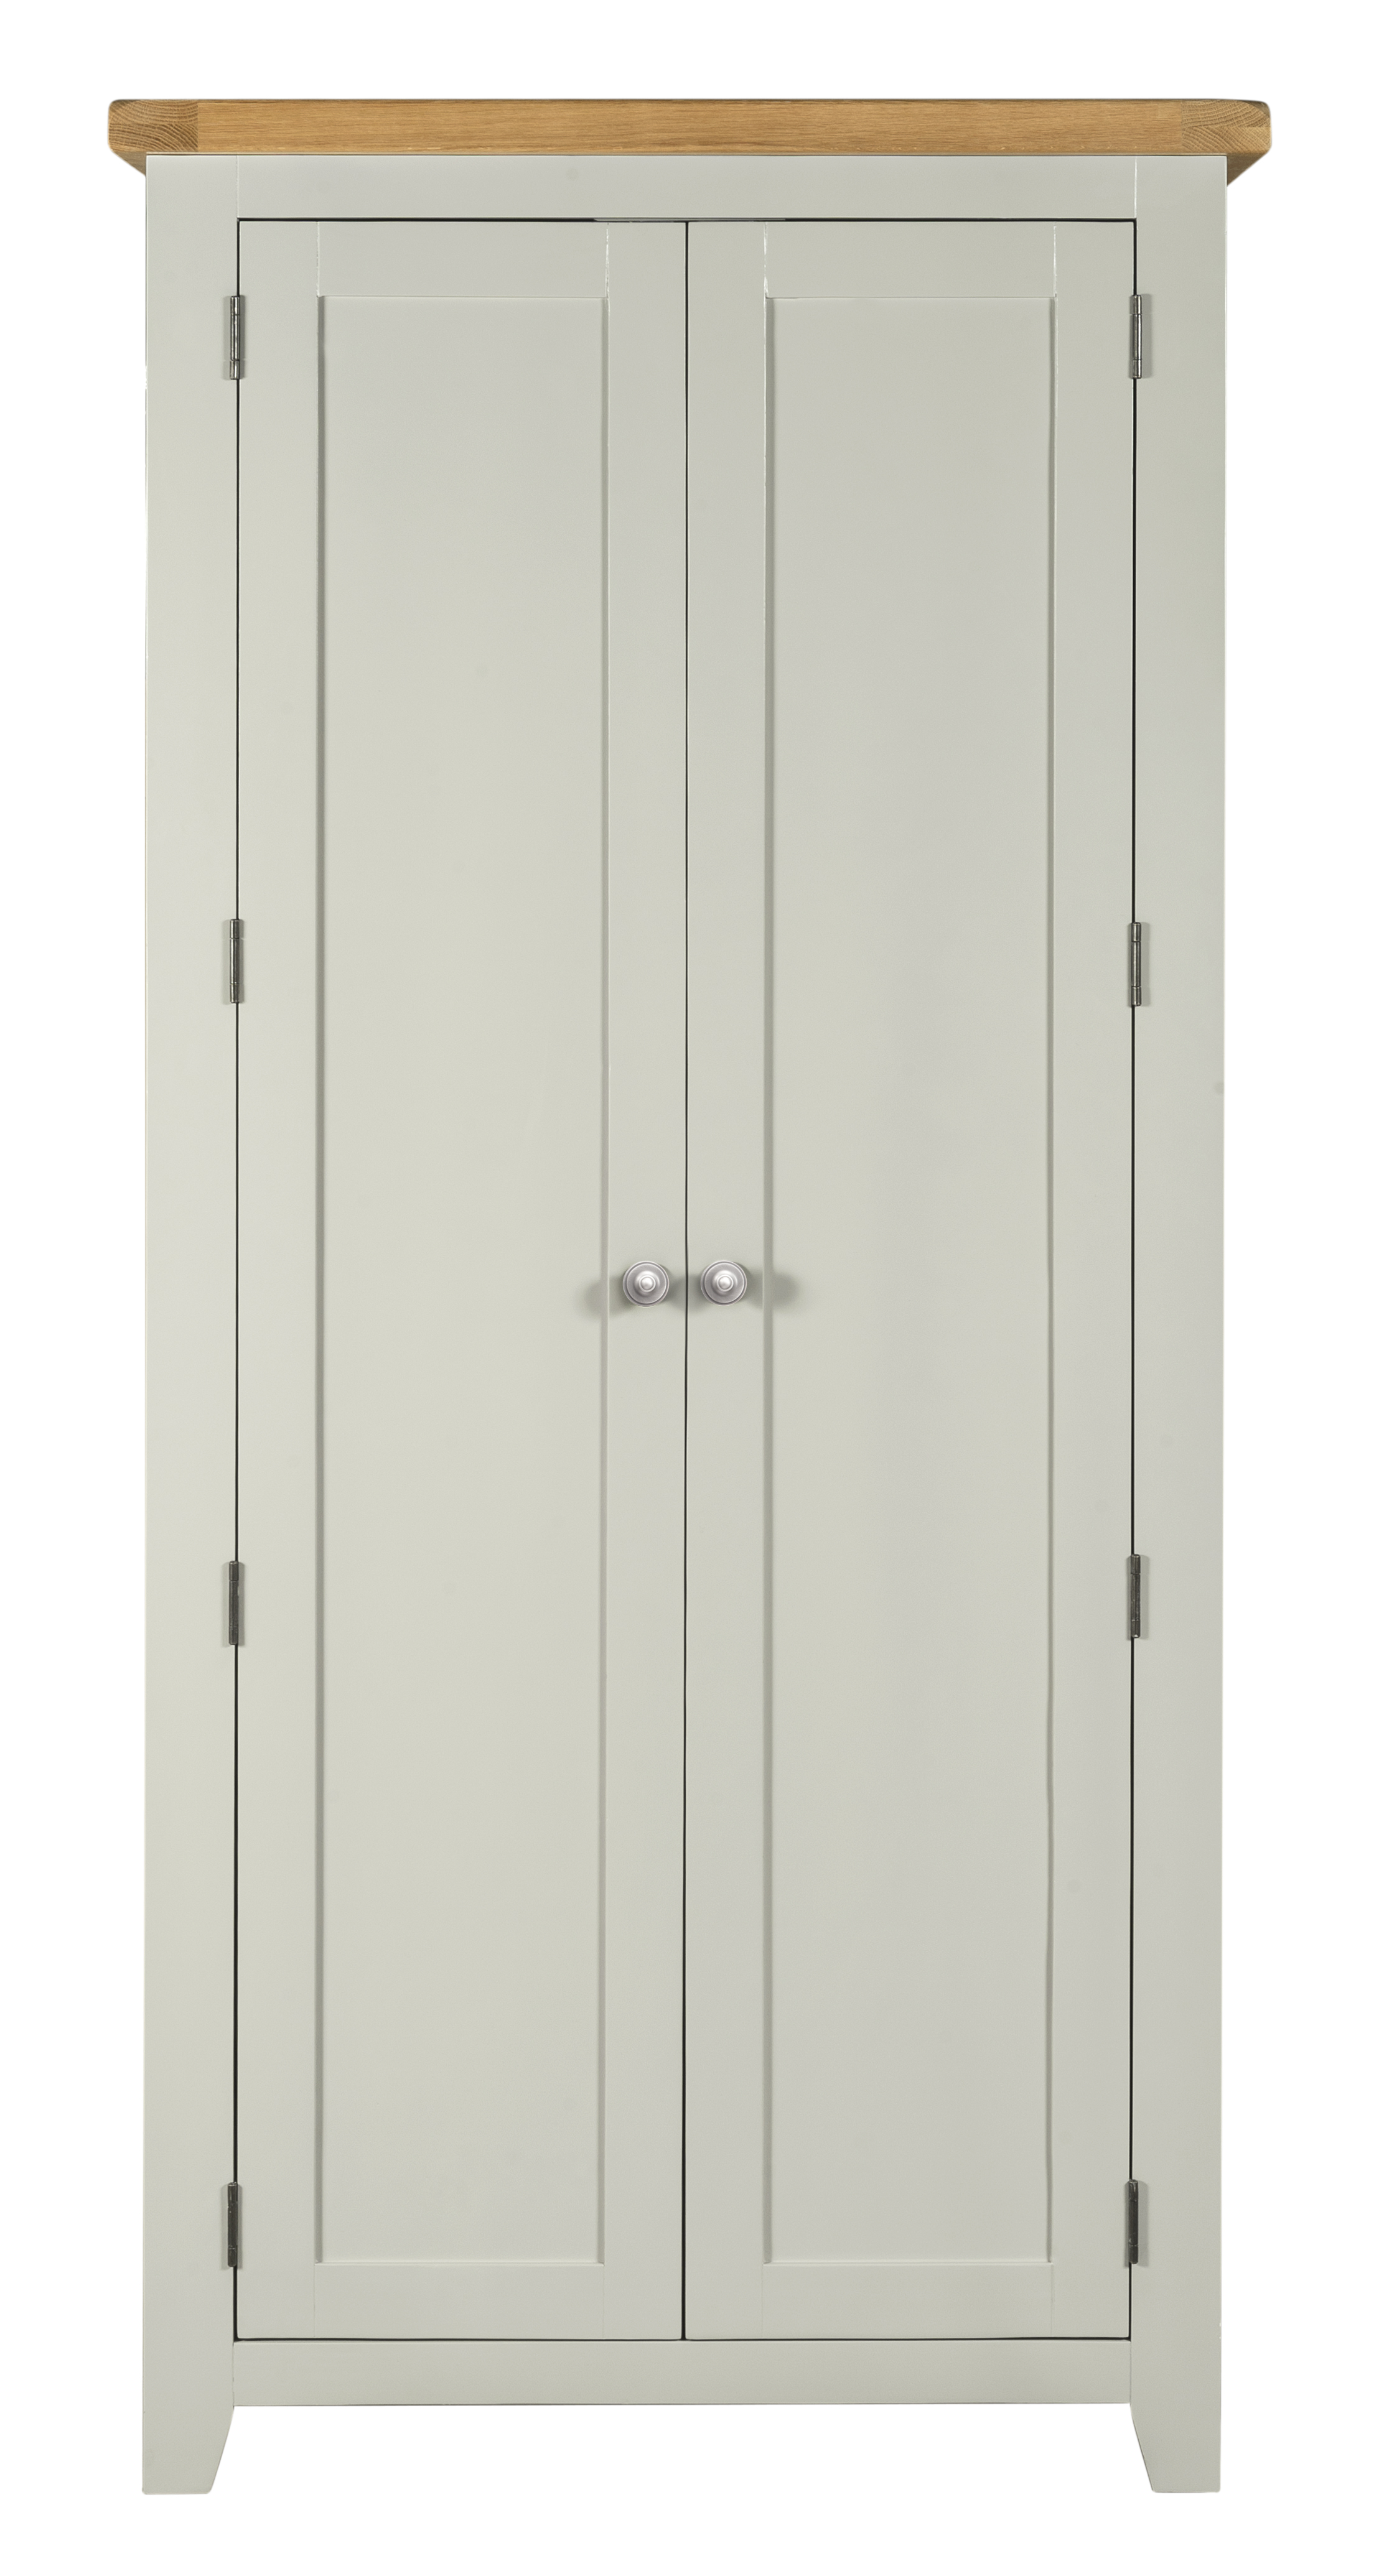 guarantee ikea hokksund brochure terms products spr en light read about year white grey pax the fitted gloss wardrobes in high wardrobe gb cm